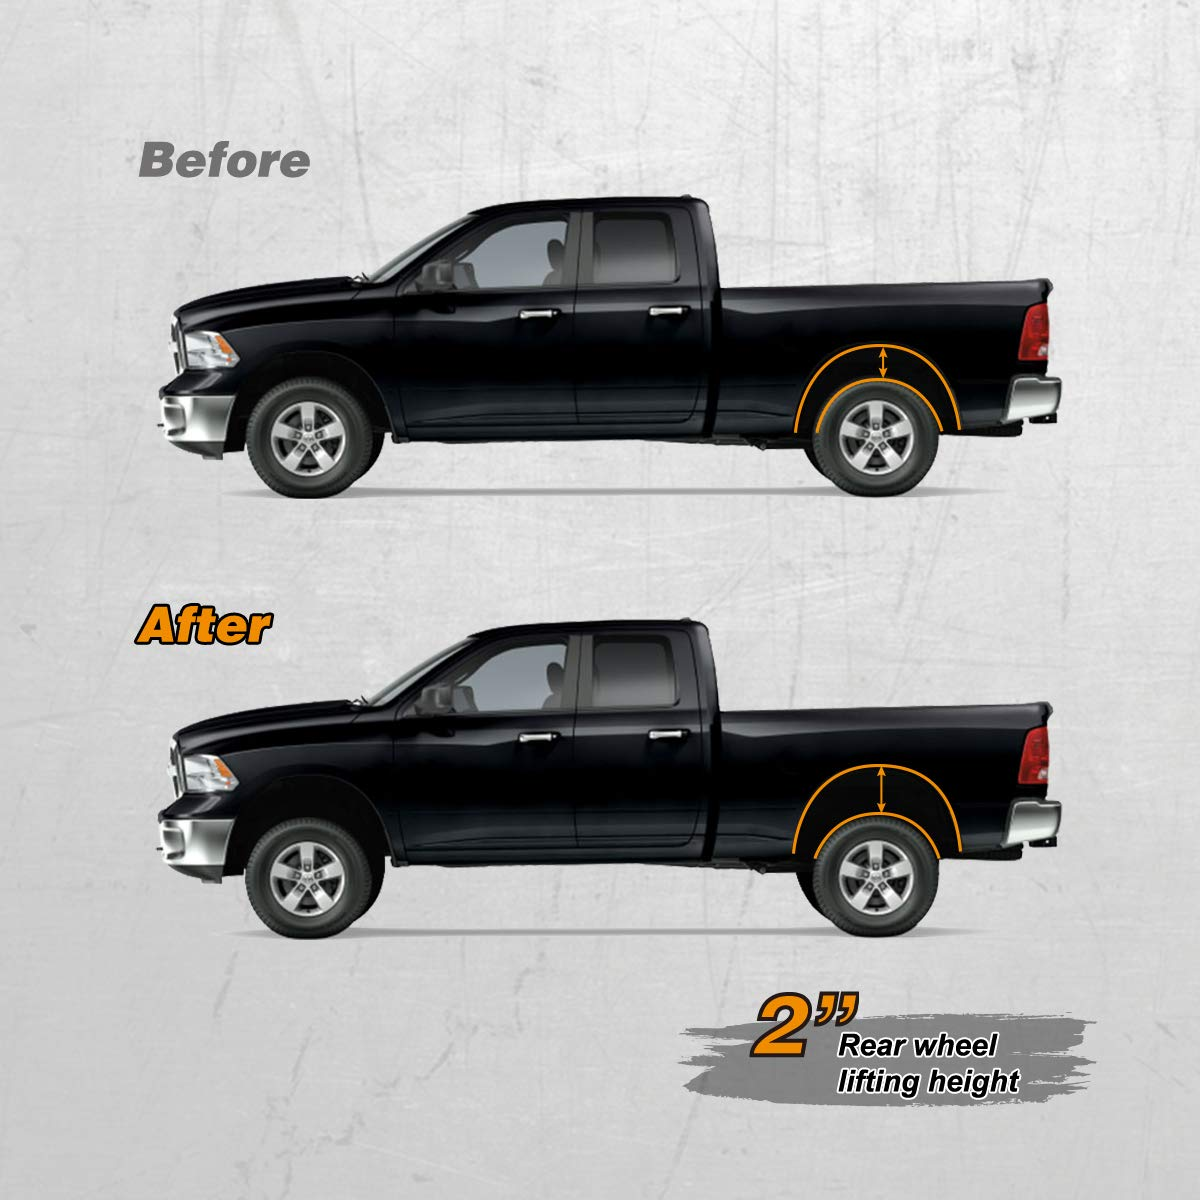 Leveling lift kit for Dodge Ram 1500,Glorider 2 Rear car Lift Aircraft Billet Aluminum Coil Spring Spacer Compatible with 2009 2010 2011 2012 2013 2014 2015 2016 2017 2018 Dodge Ram 1500 4WD Only